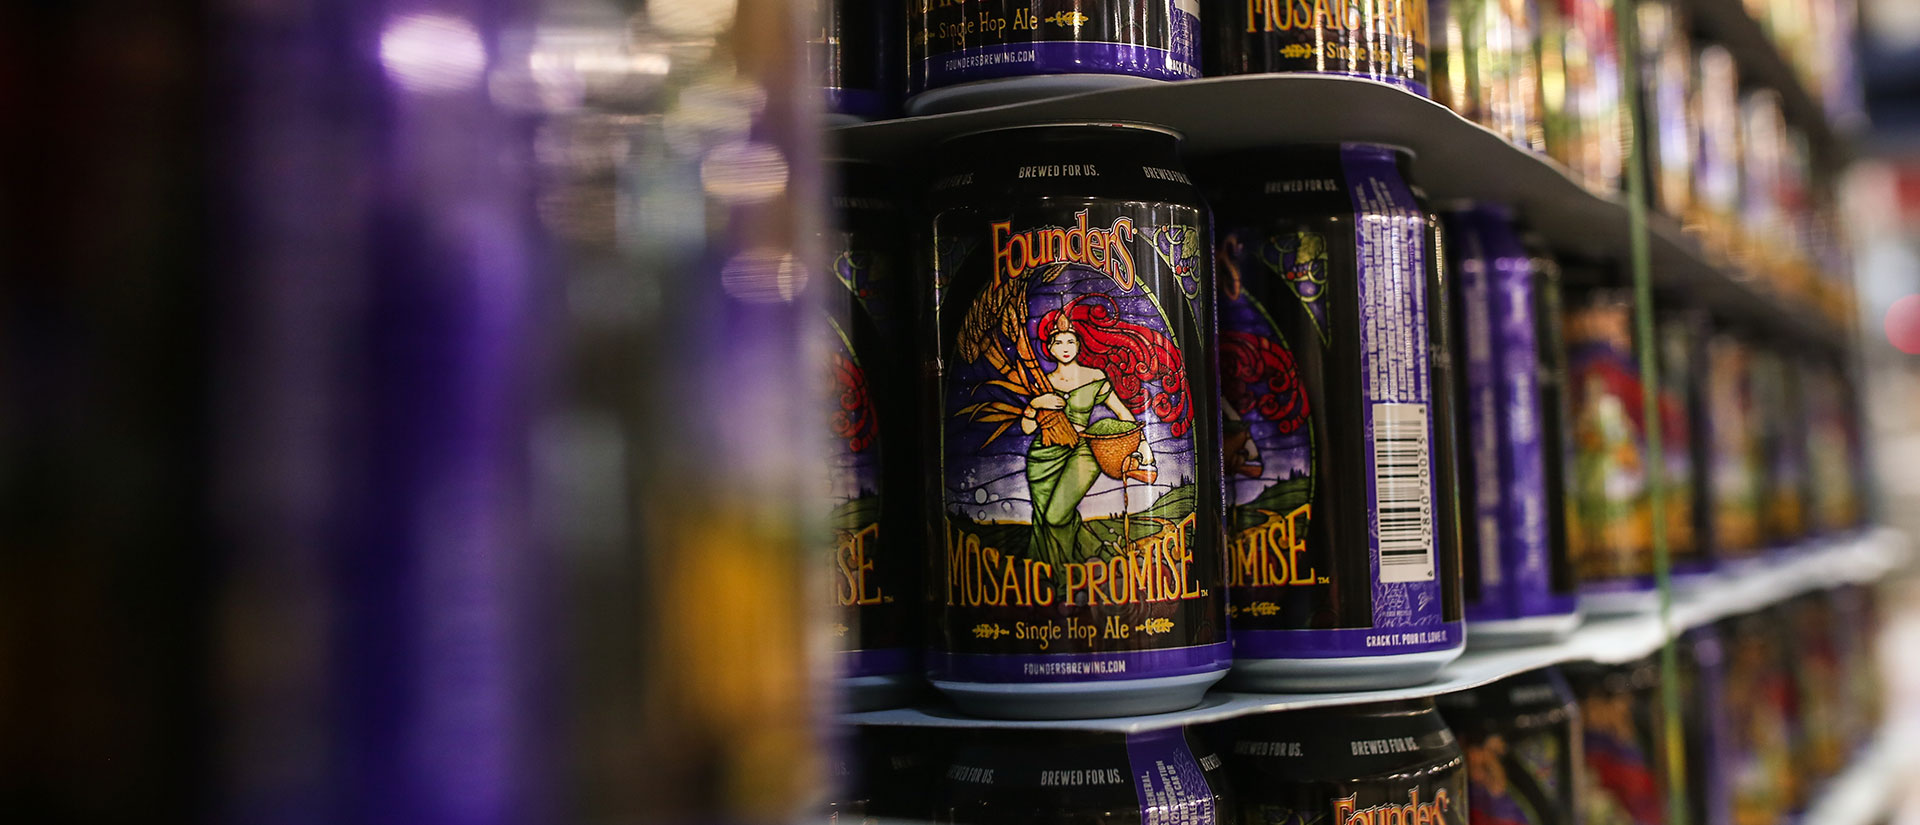 Cans of Founders Mosaic Promise